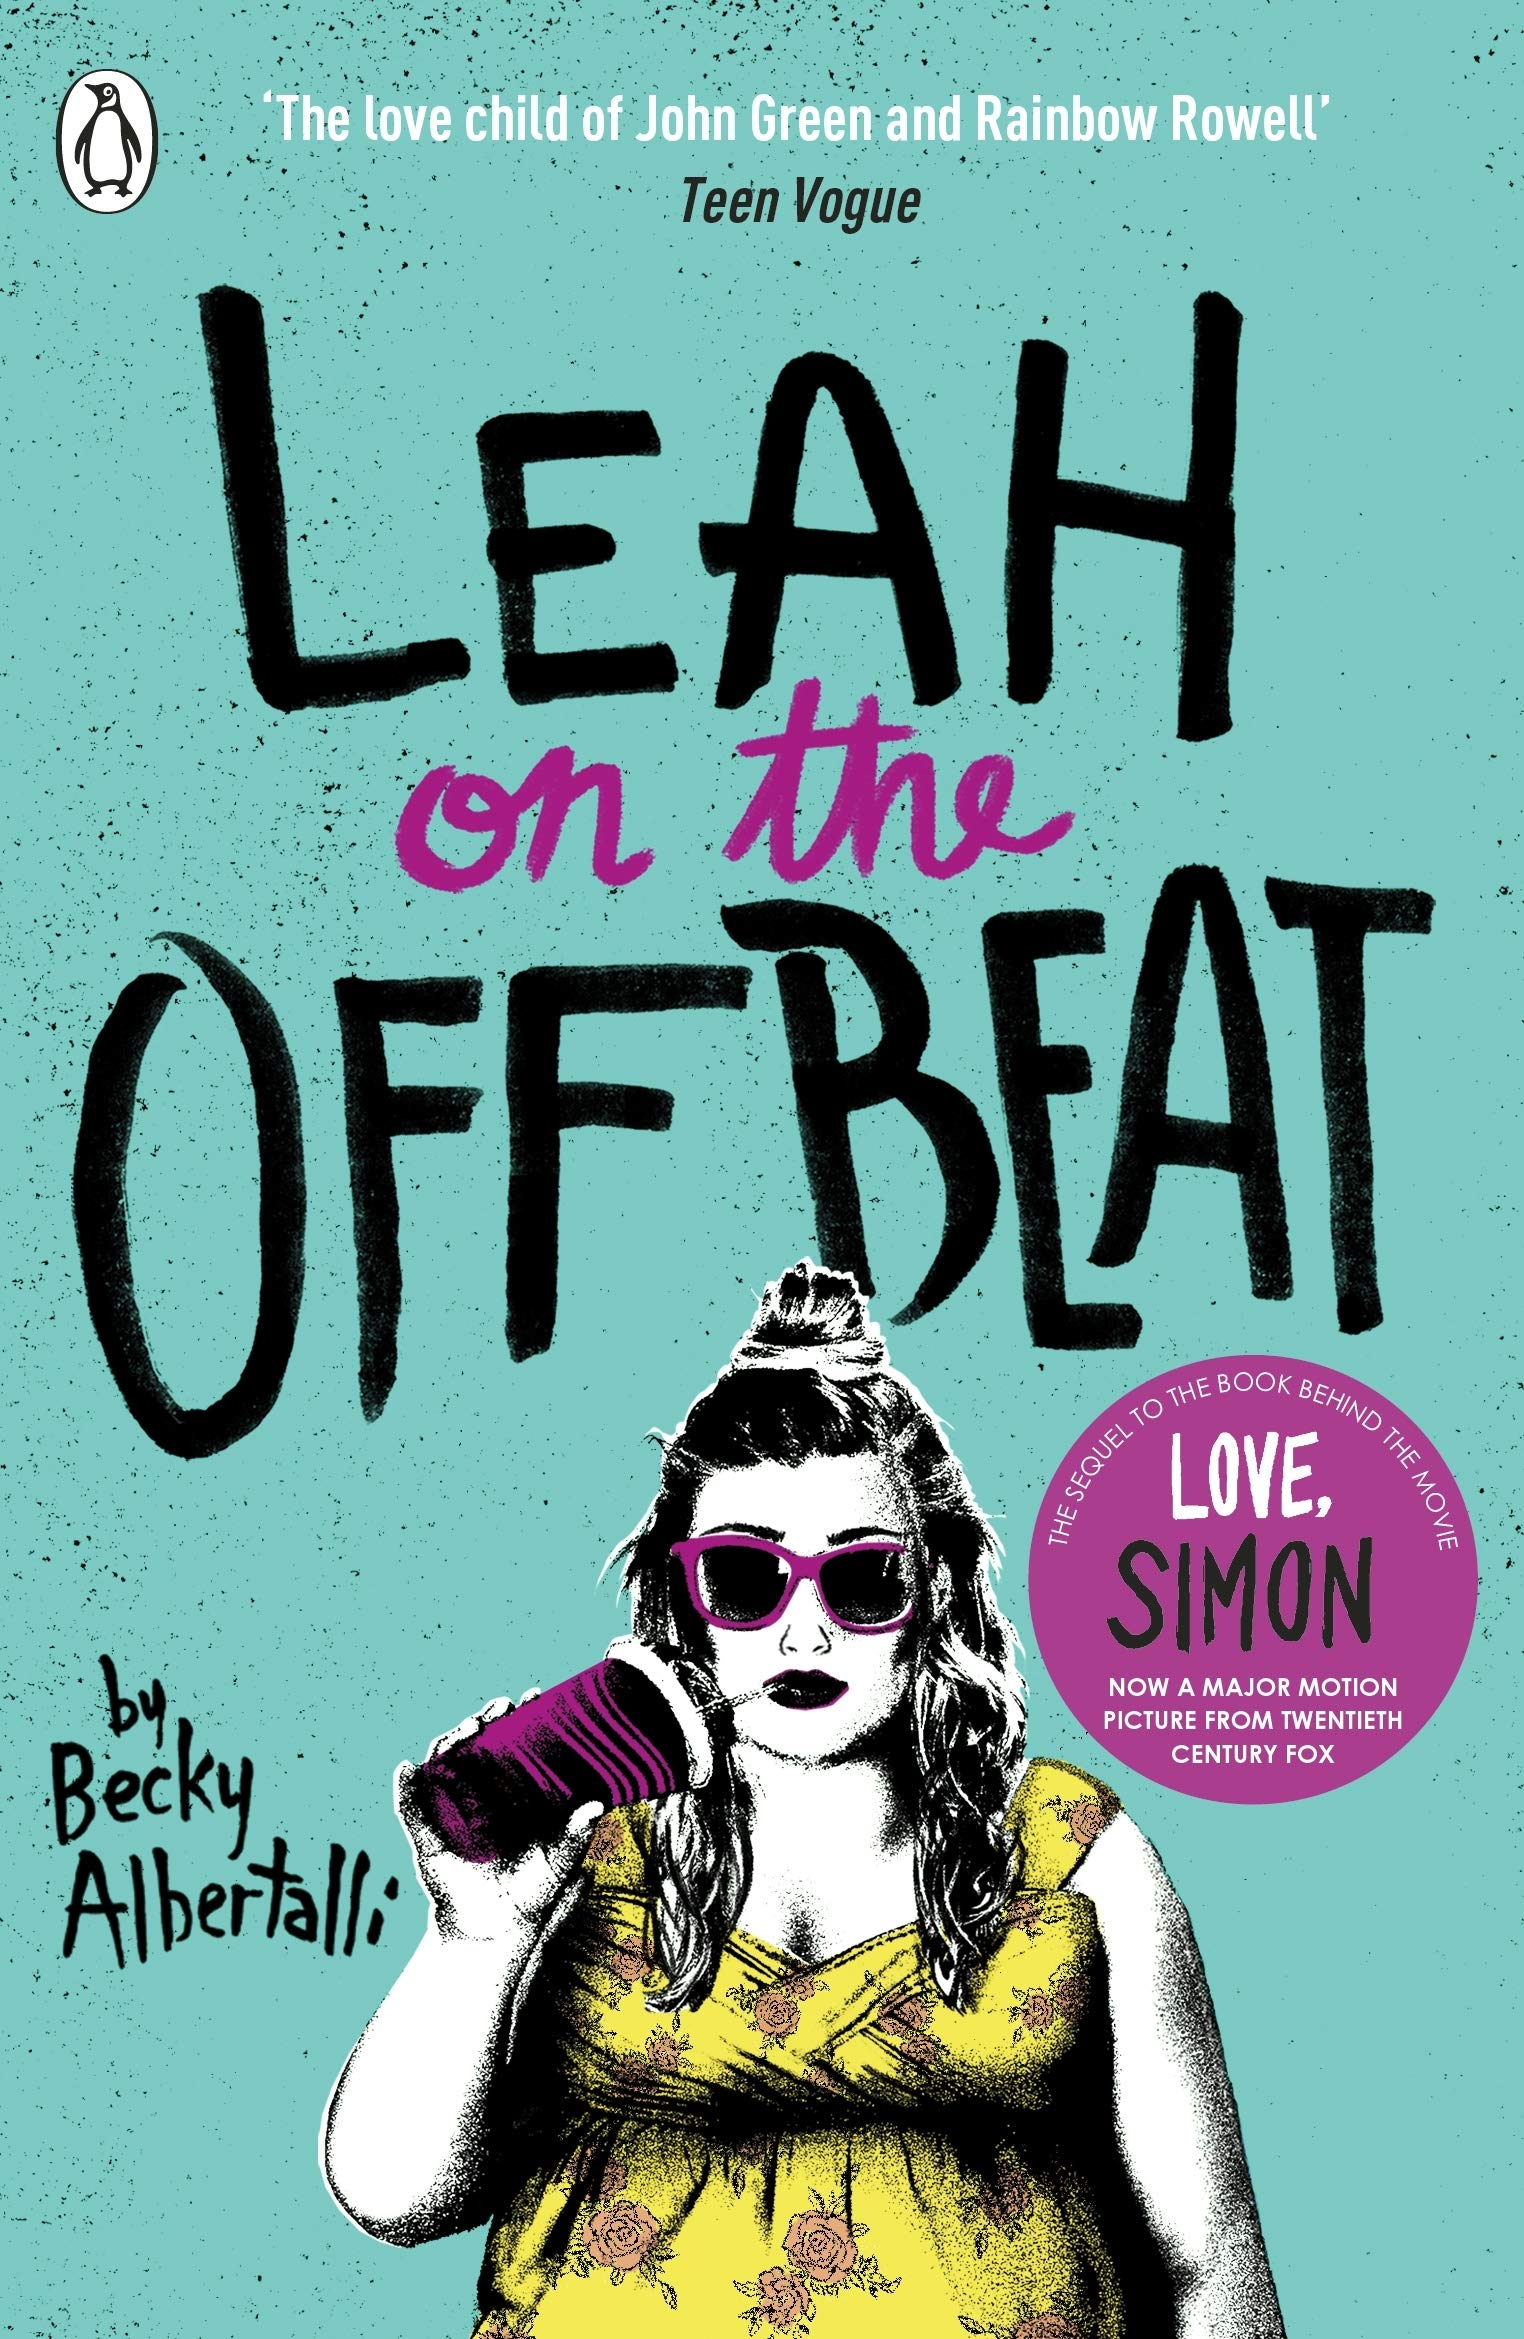 Leah on the Offbeat: Amazon.co.uk: Albertalli, Becky: Books